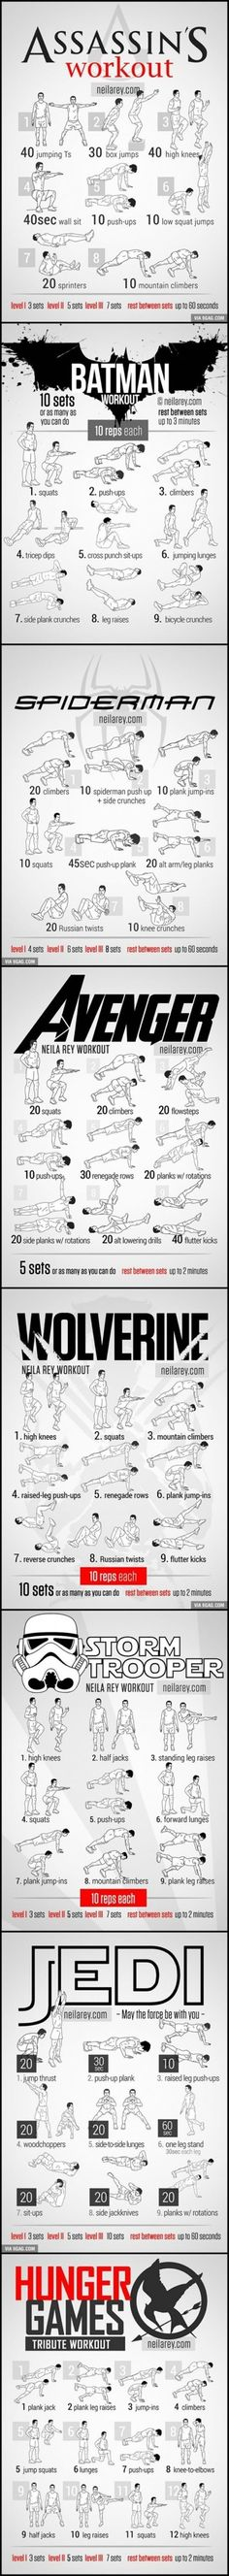 Movie themed workout, assassins workout, batman workout, Spider-man workout  avengers workout, wolverine workout, storm trooper workout, Jedi workout, hunger games workout